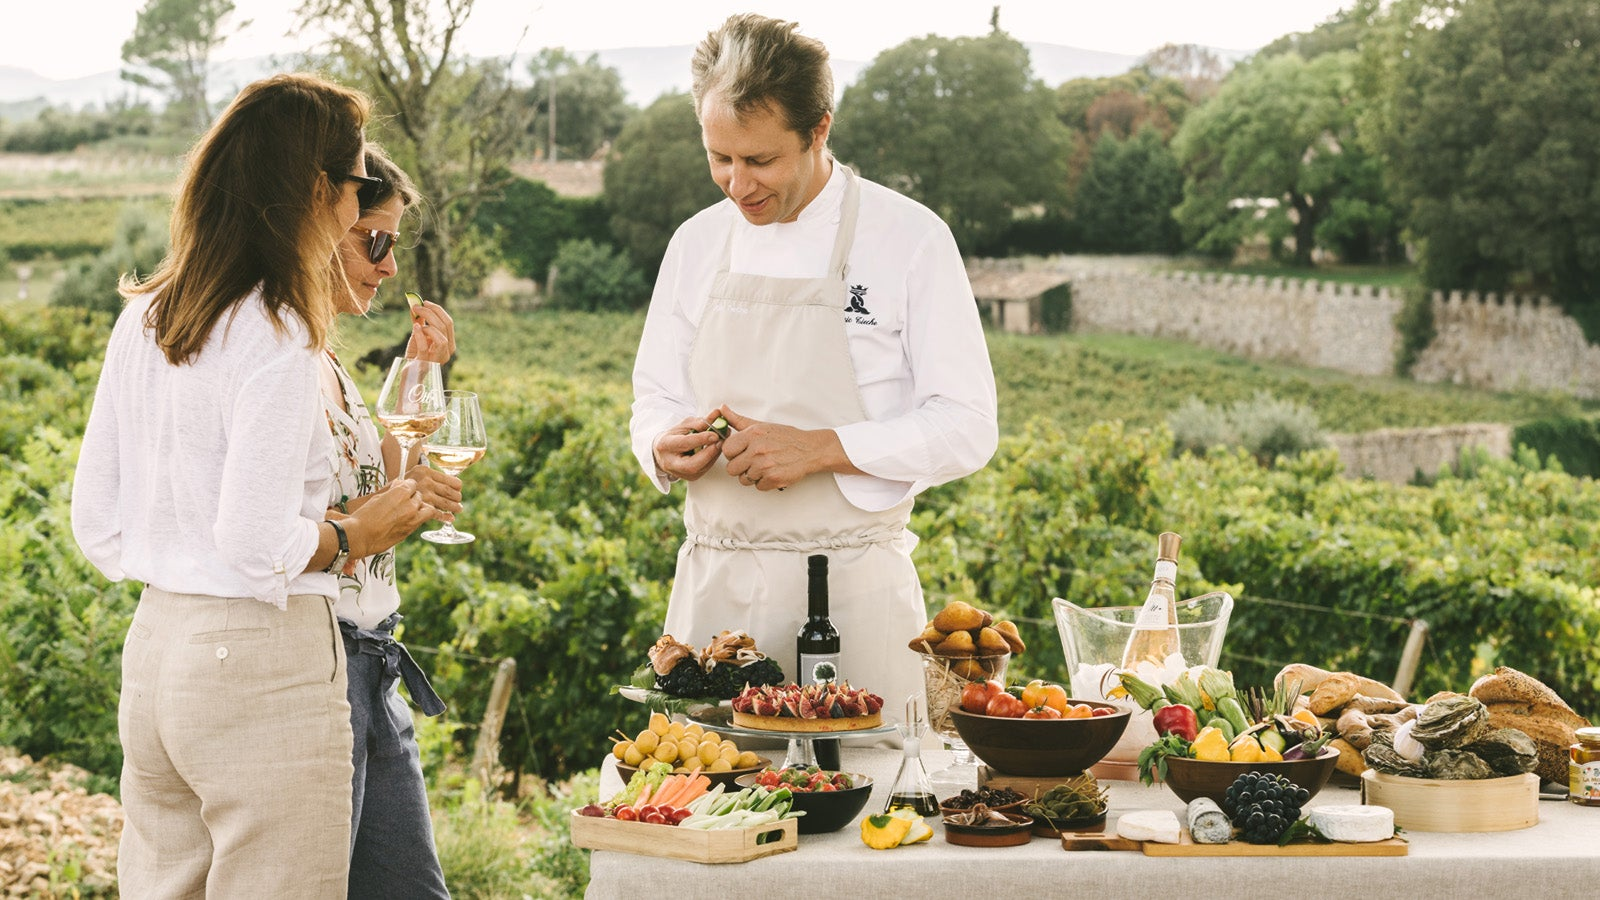 Chef Yoric Tièche, Le Cap Four Seasons Hotels and Resorts - SWAGGER